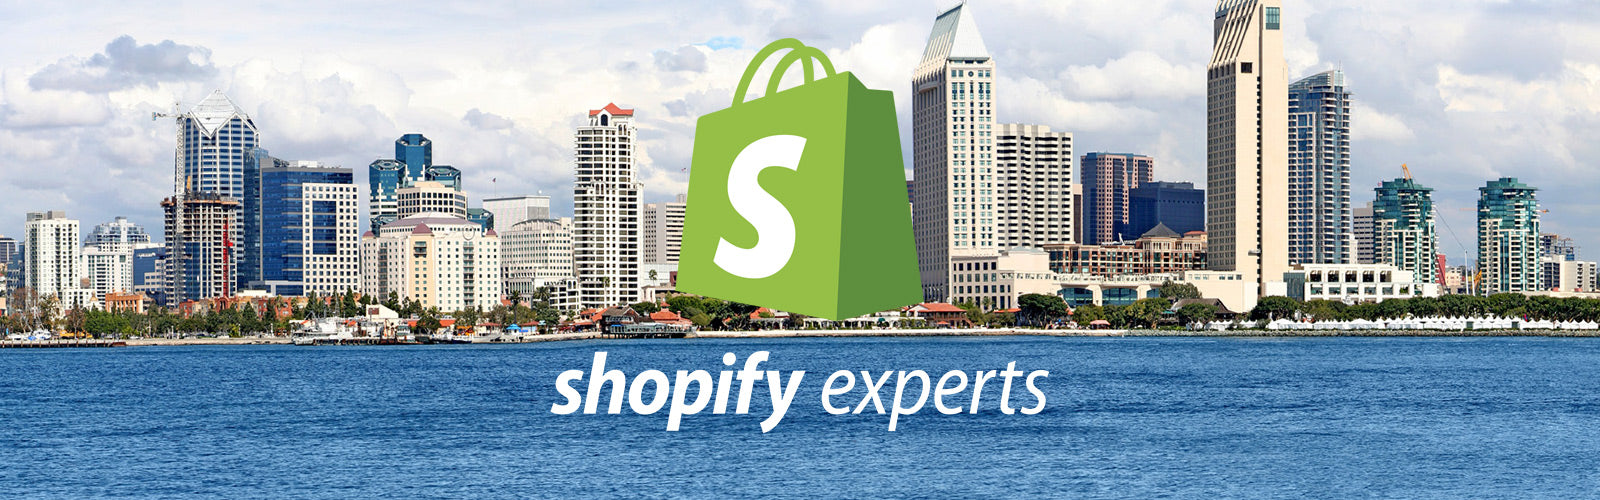 Realm - Shopify Experts San Diego, CA Shopify Experts, Shopify Expert